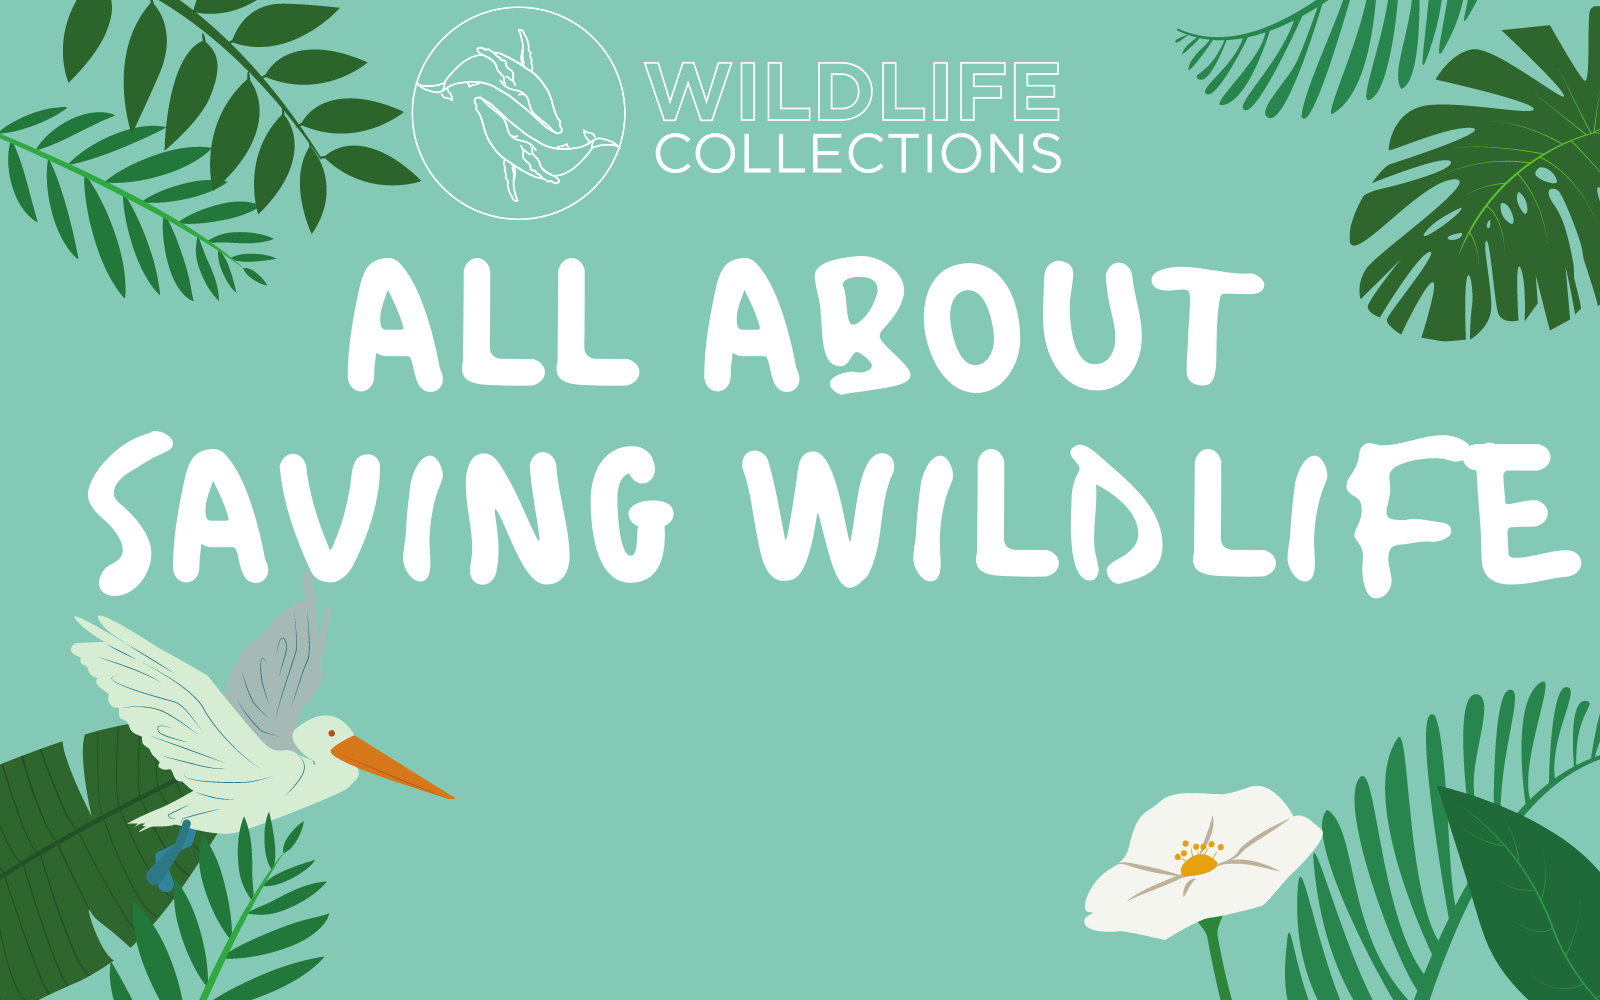 Wildlife collections is saving animals and spreading hope according to thrive